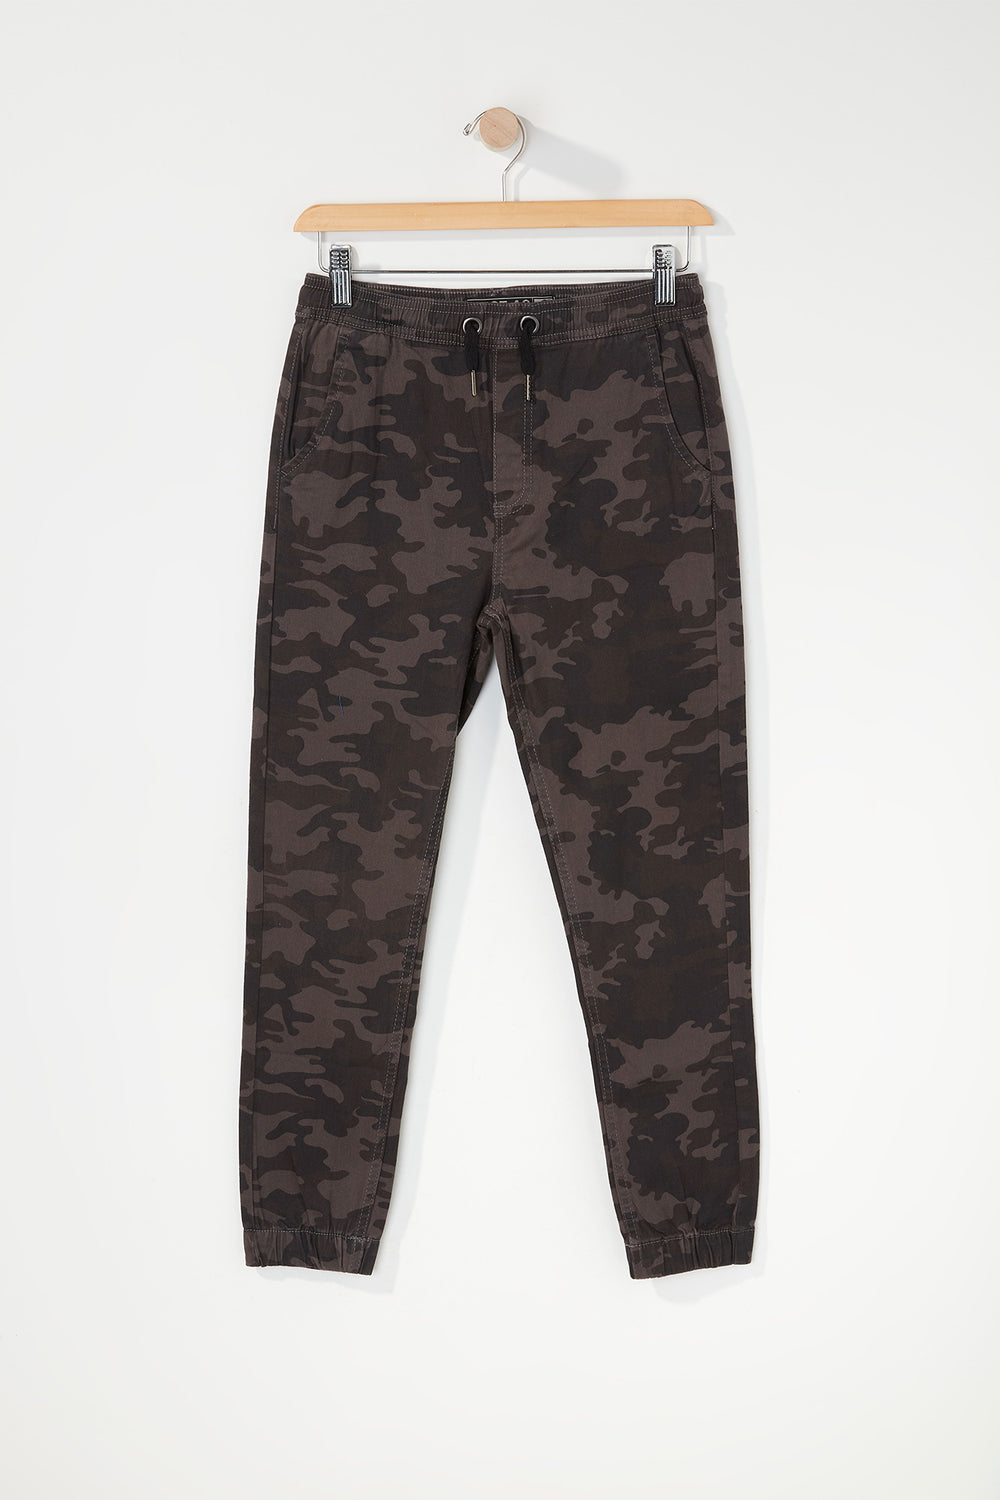 West49 Boys Camo Jogger Gingham